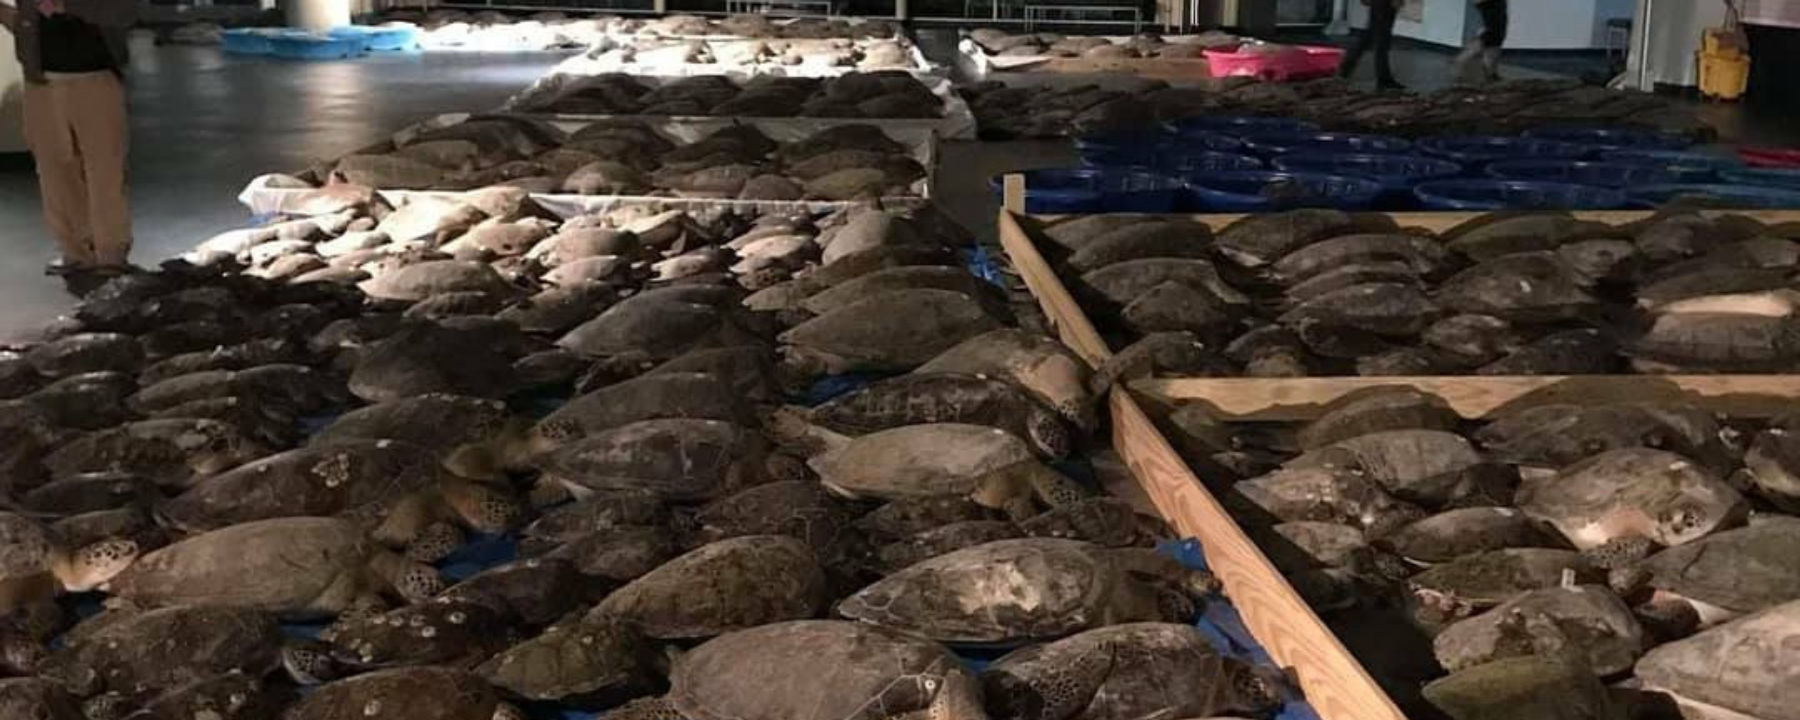 Thousands of Sea Turtles Immobilized by Brutal Texas Winter Storm